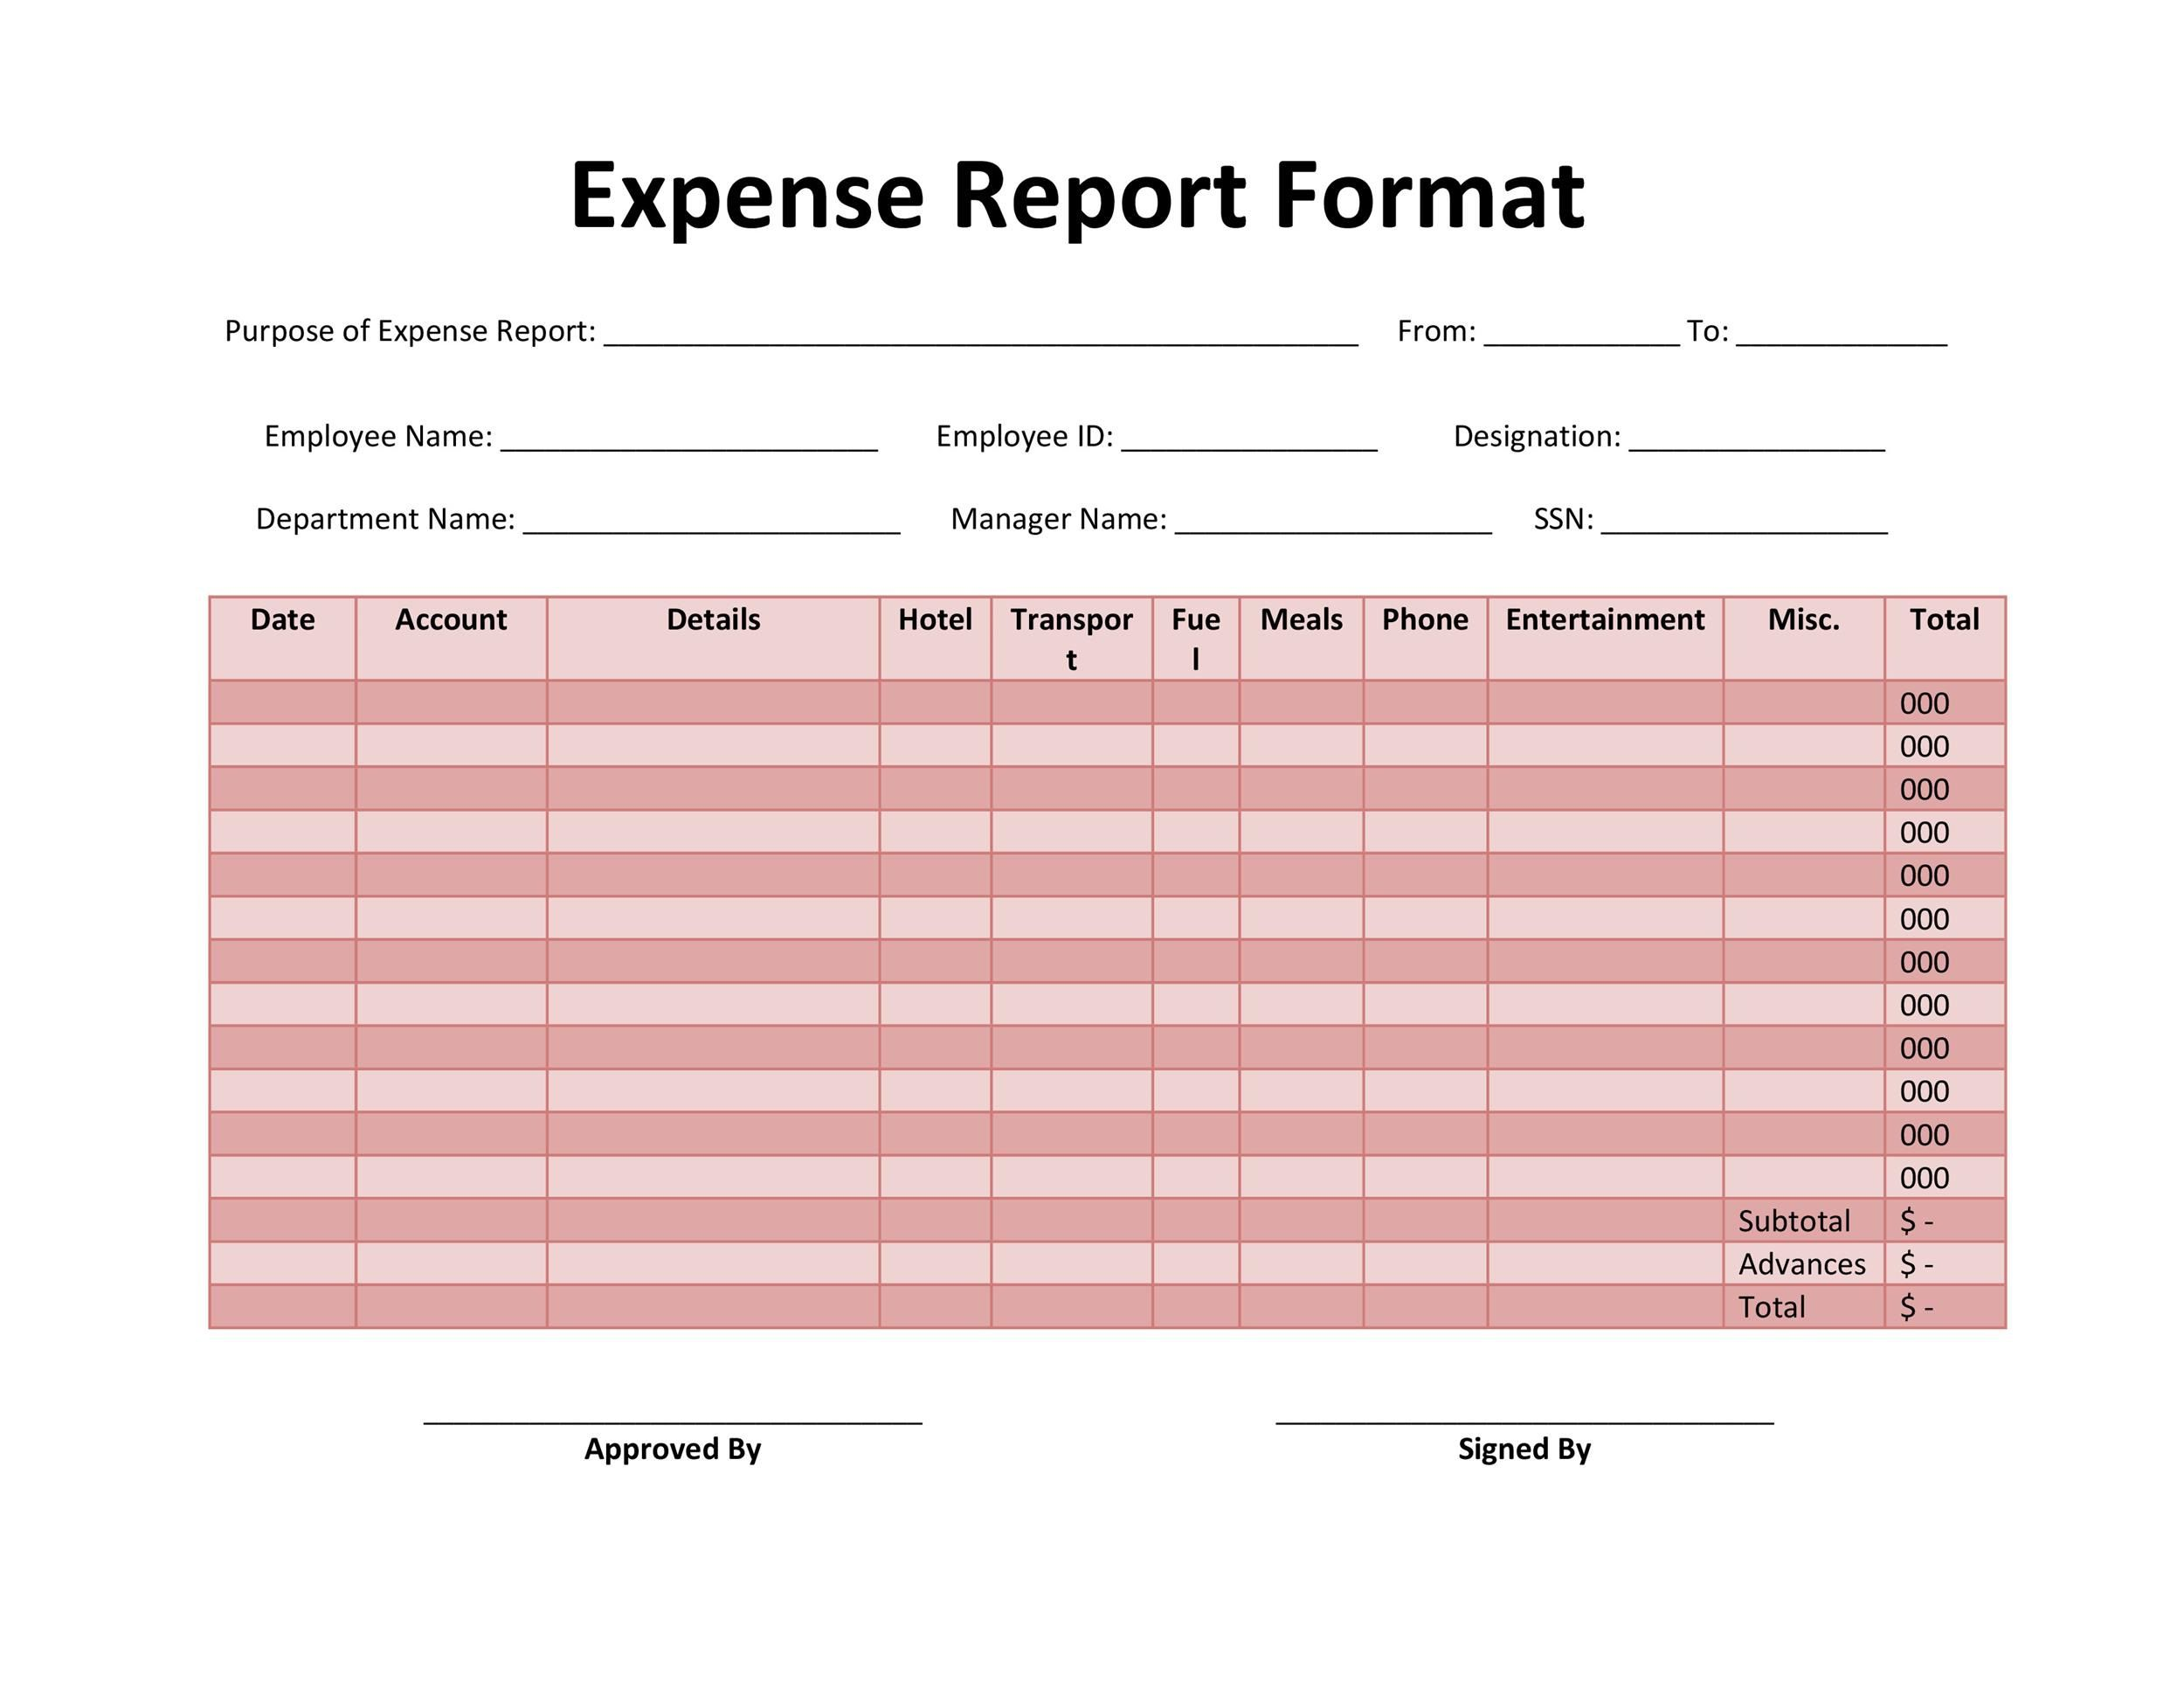 005 Impressive Simple Expense Report Template Photo  Example Free FormFull